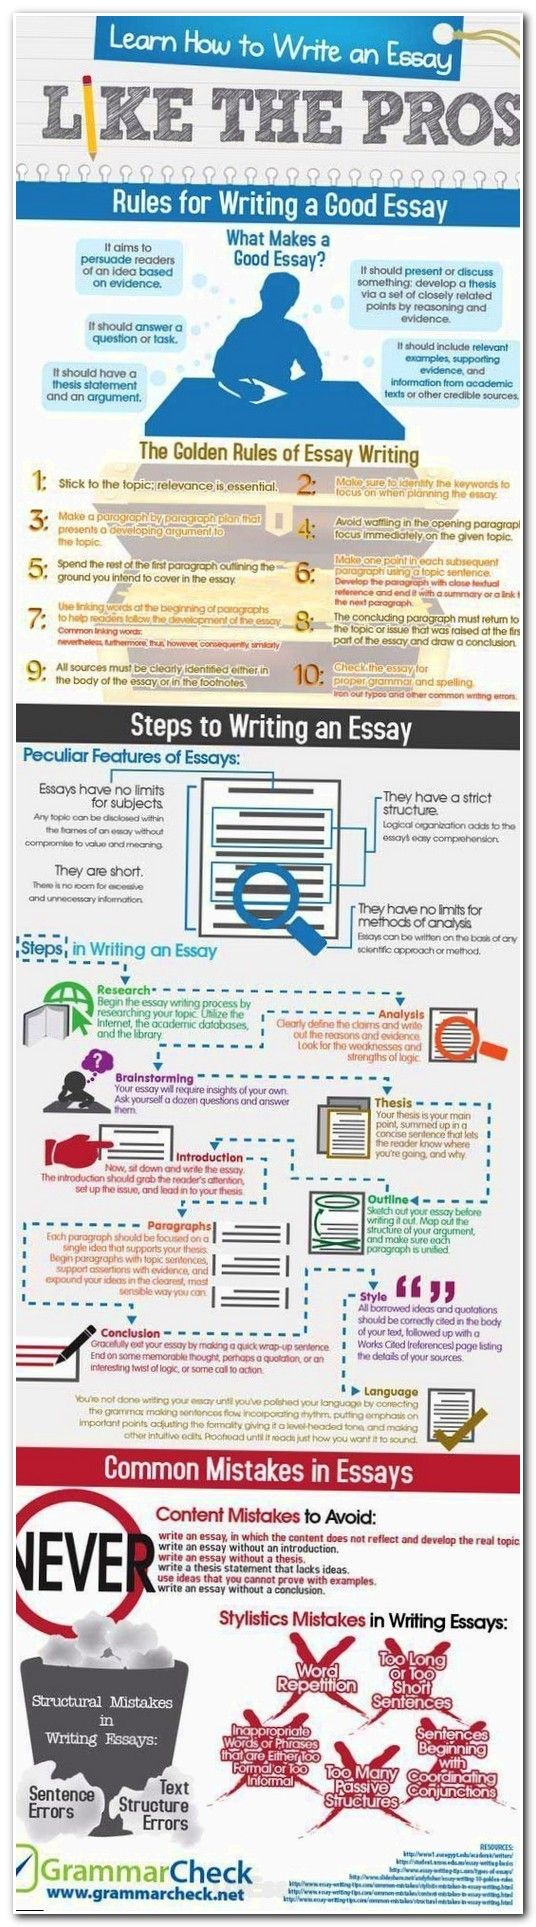 essay wrightessay contrast comparison essay writing prompts essay wrightessay contrast comparison essay writing prompts fourth grade how to develop